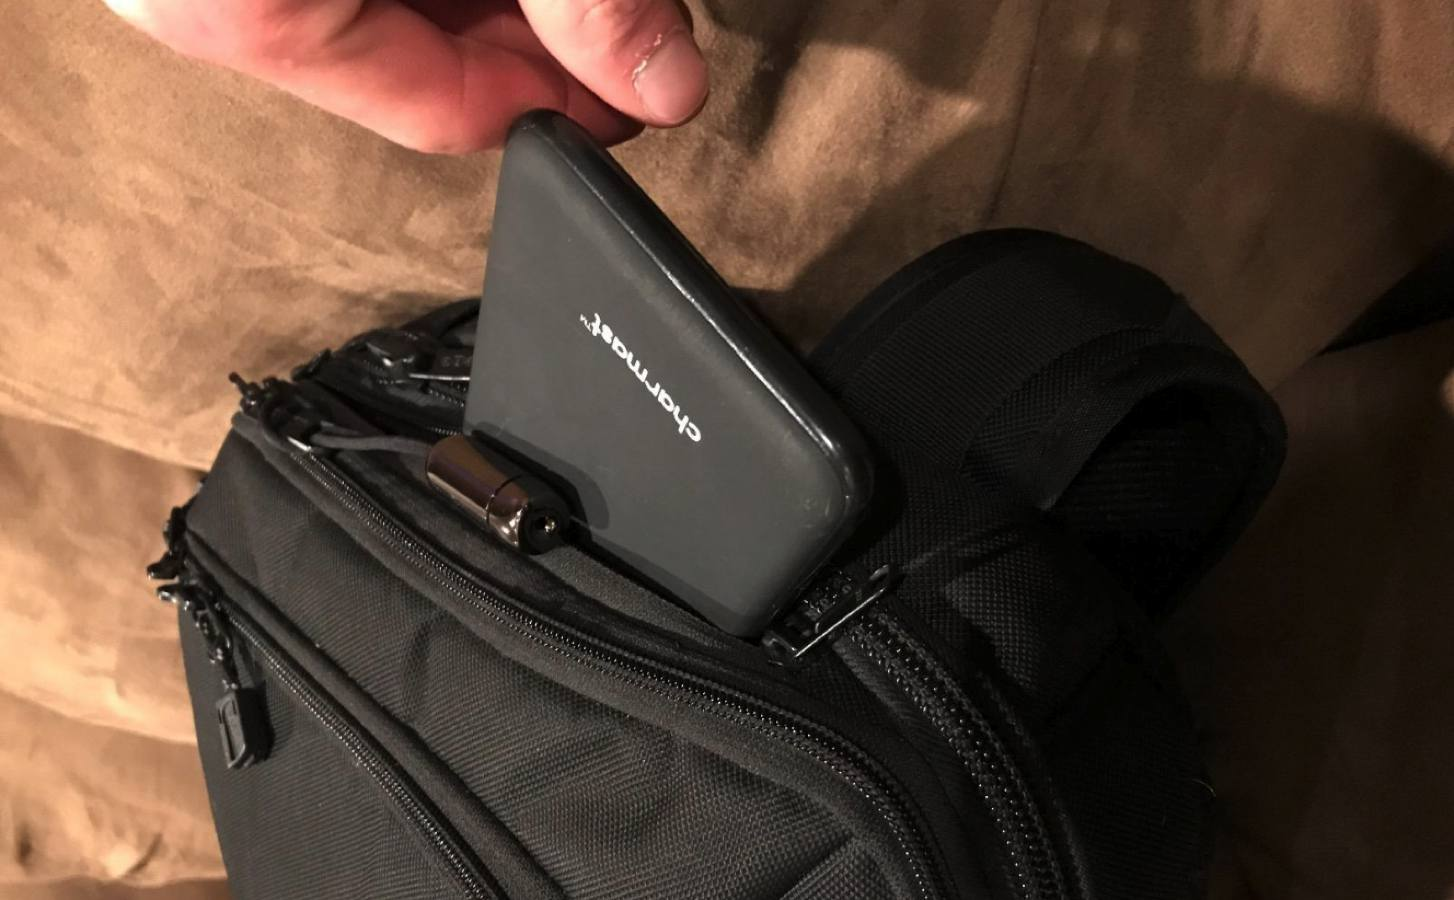 charmast battery pack review